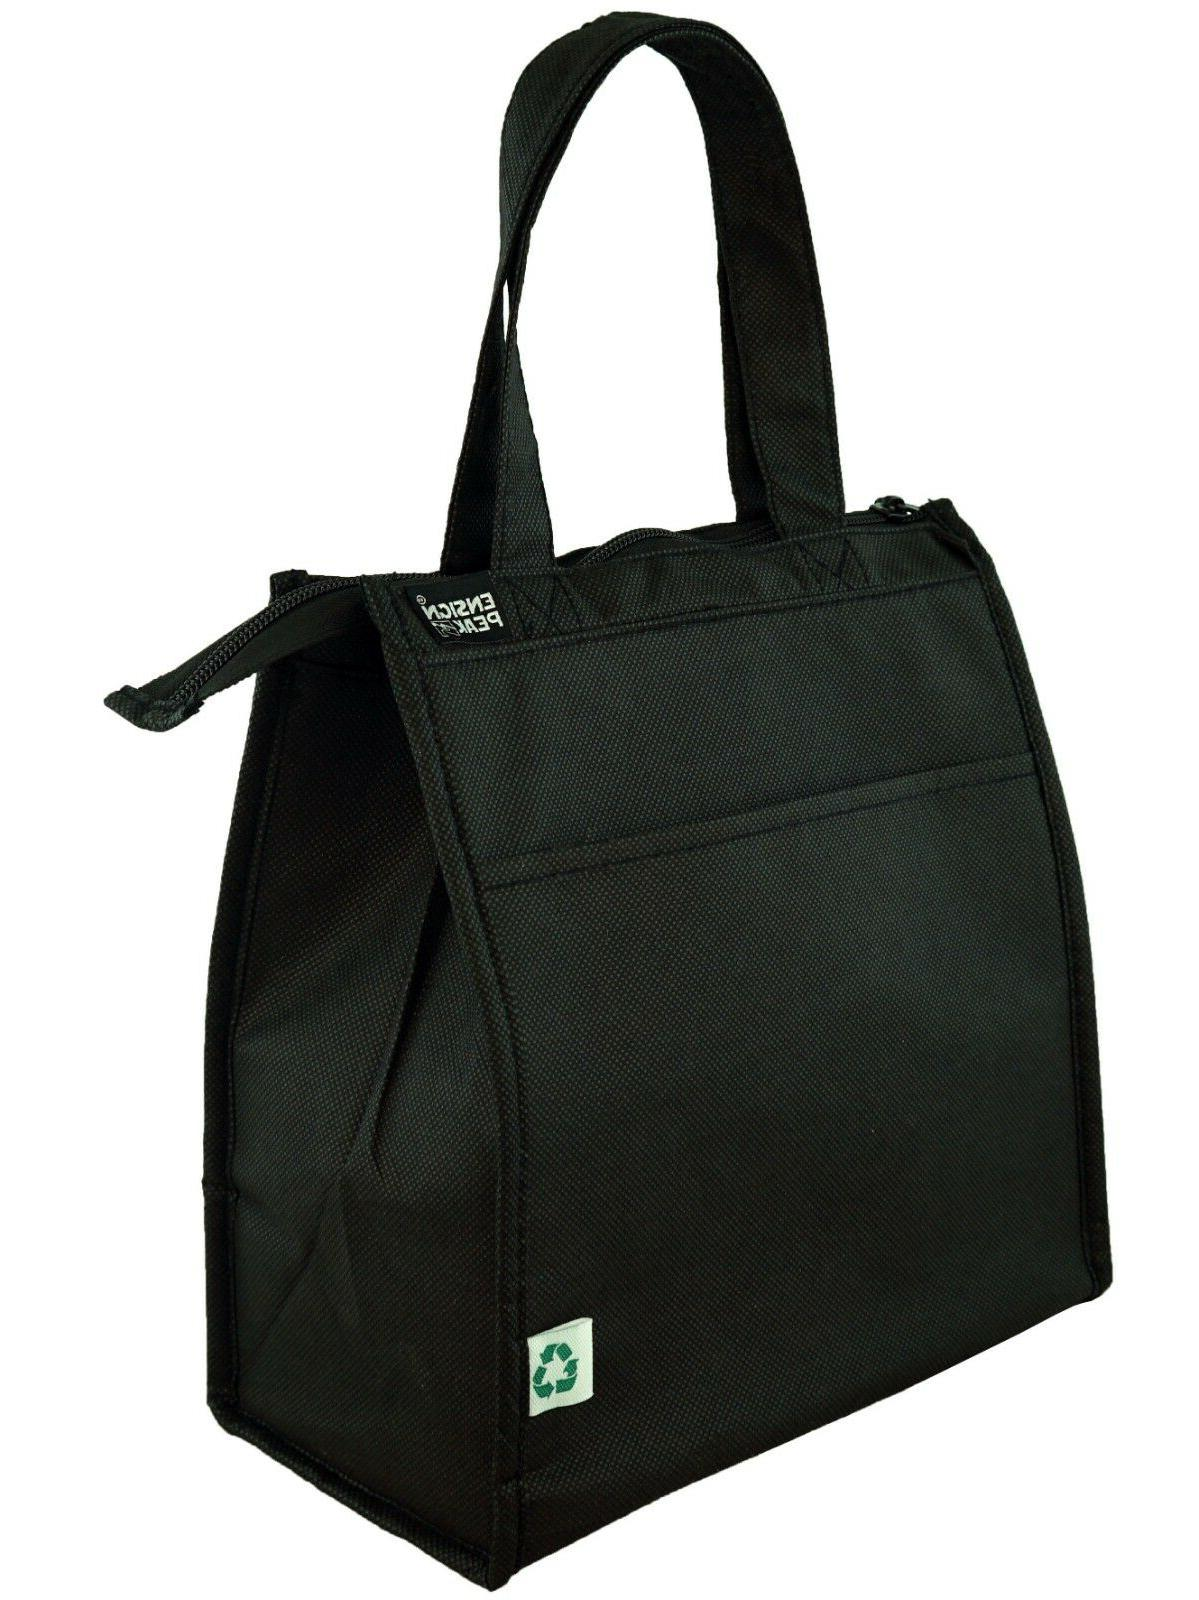 Ensign Hot Cold Tote Small